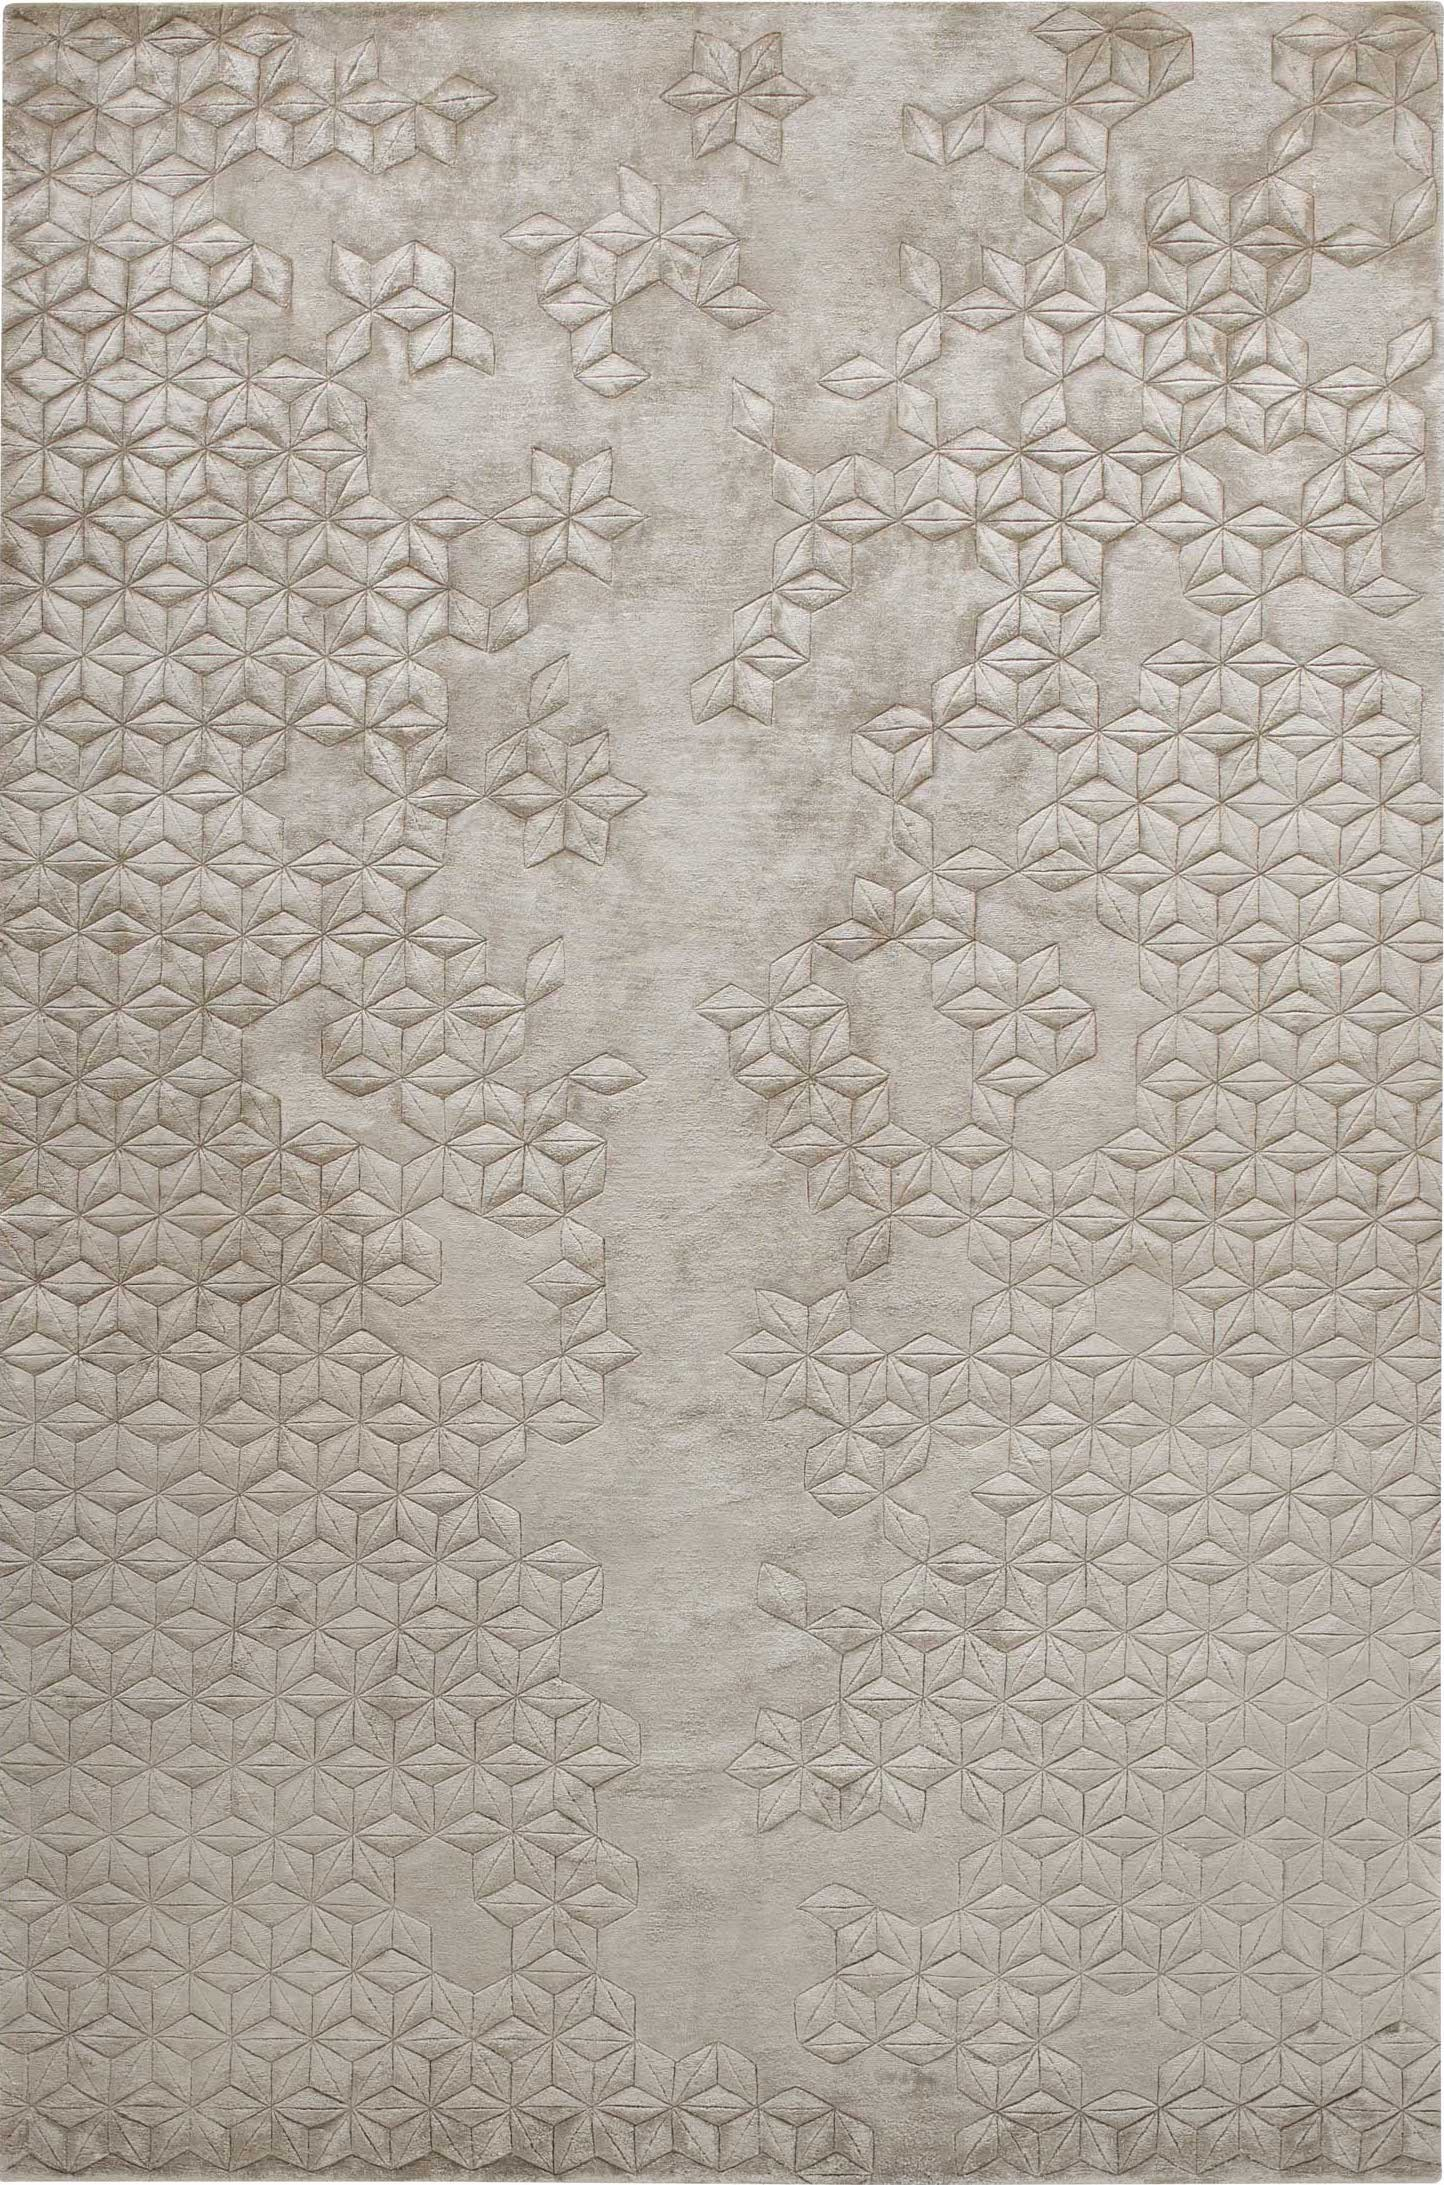 Hand knotted silk rugs